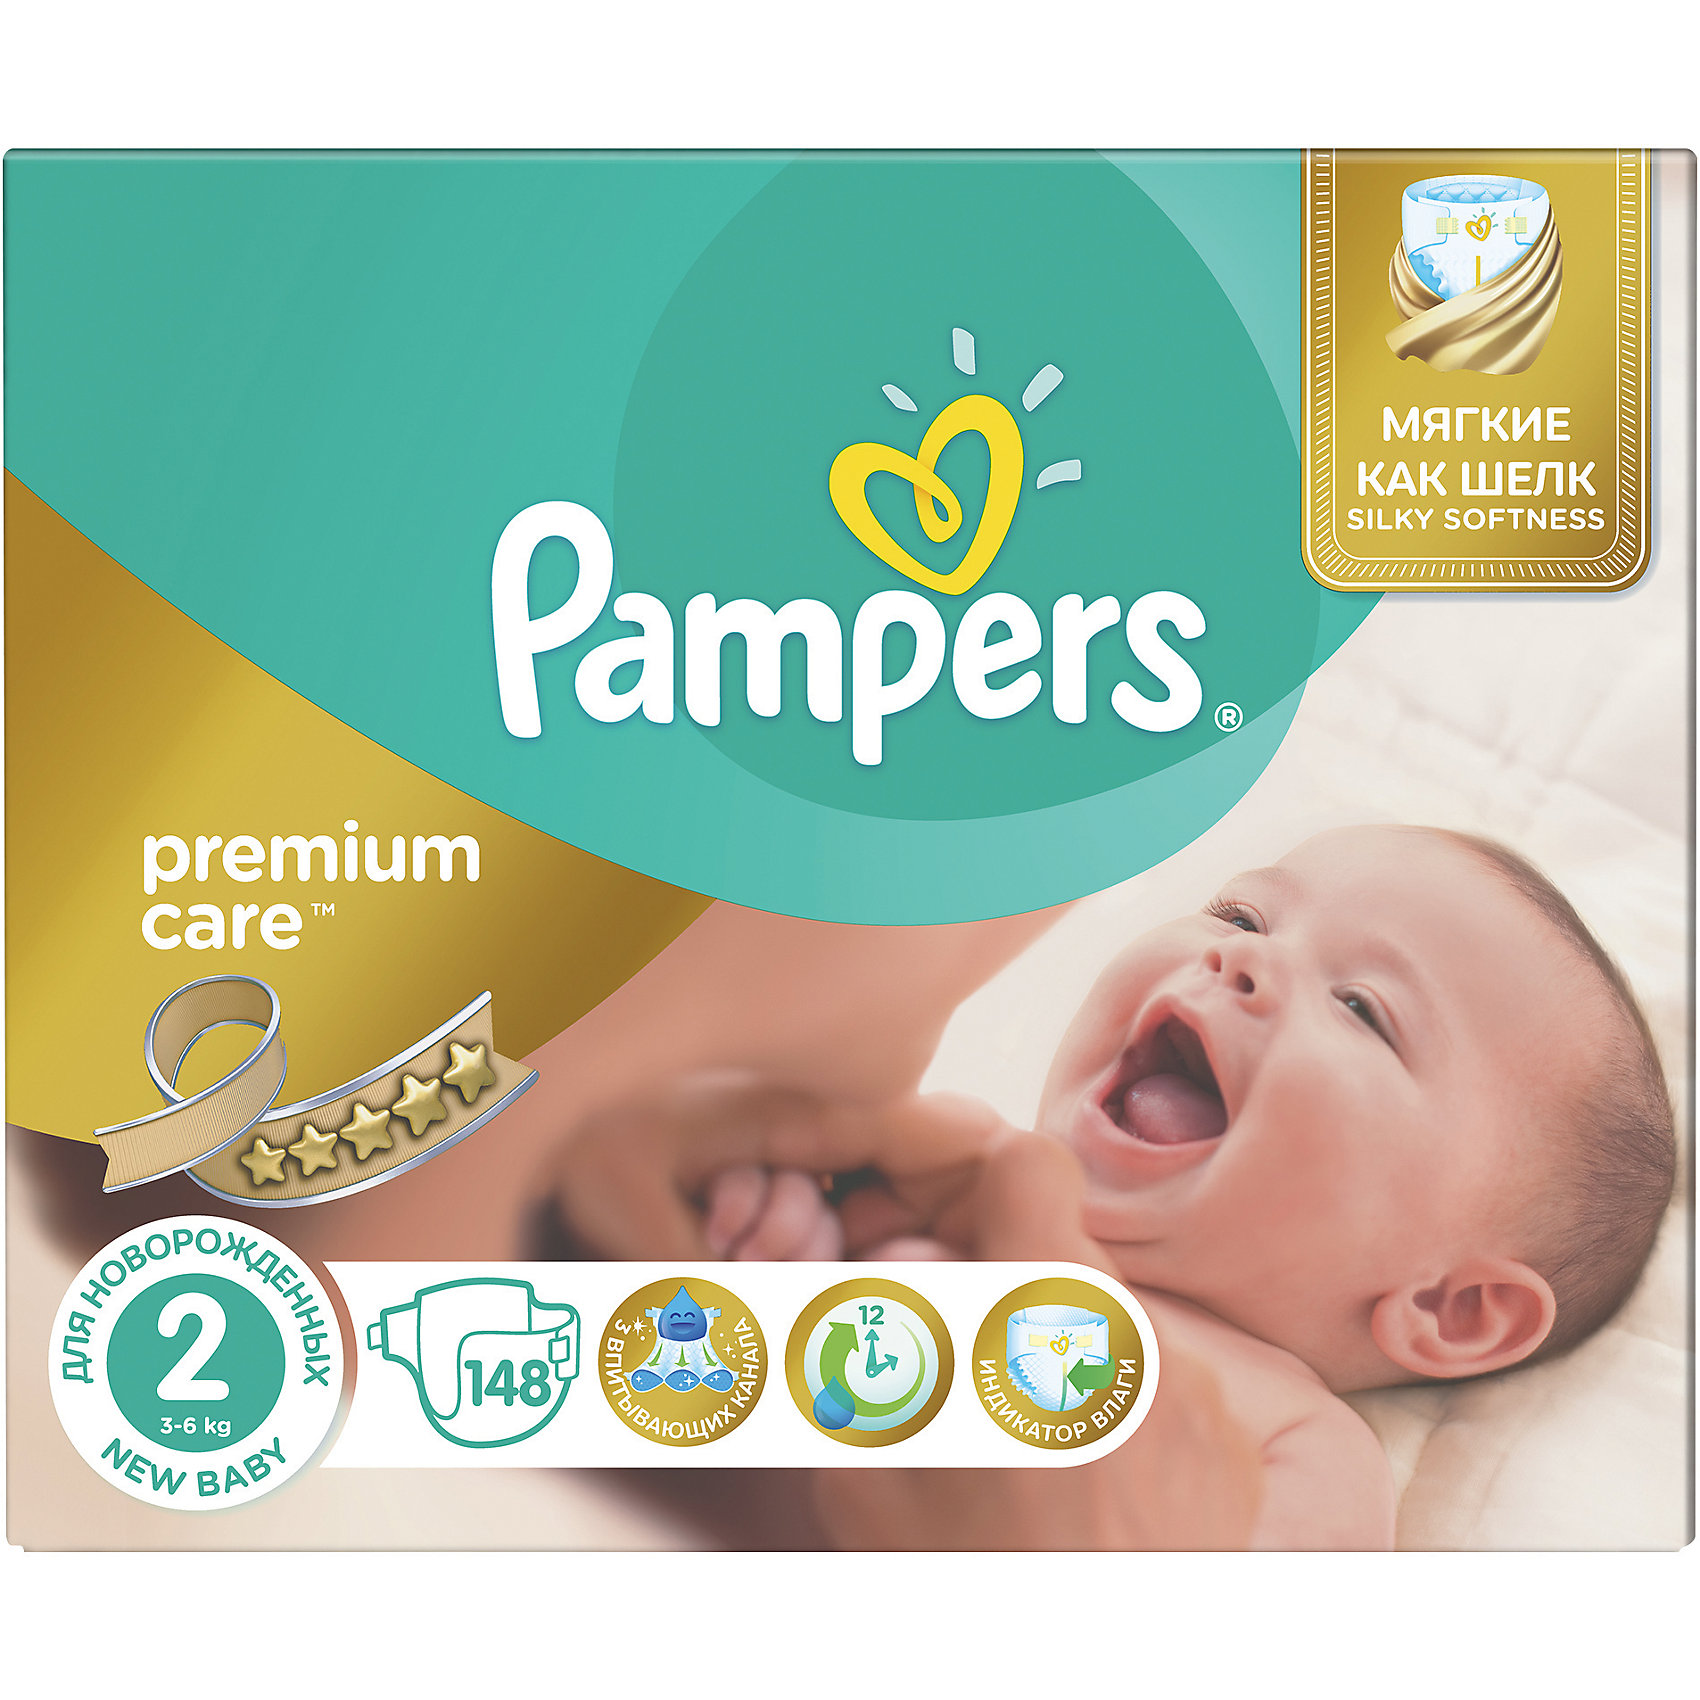 Подгузники Pampers Premium Care, New baby,3-6 кг, 2 размер, Mega pack, 148 шт., Pampers